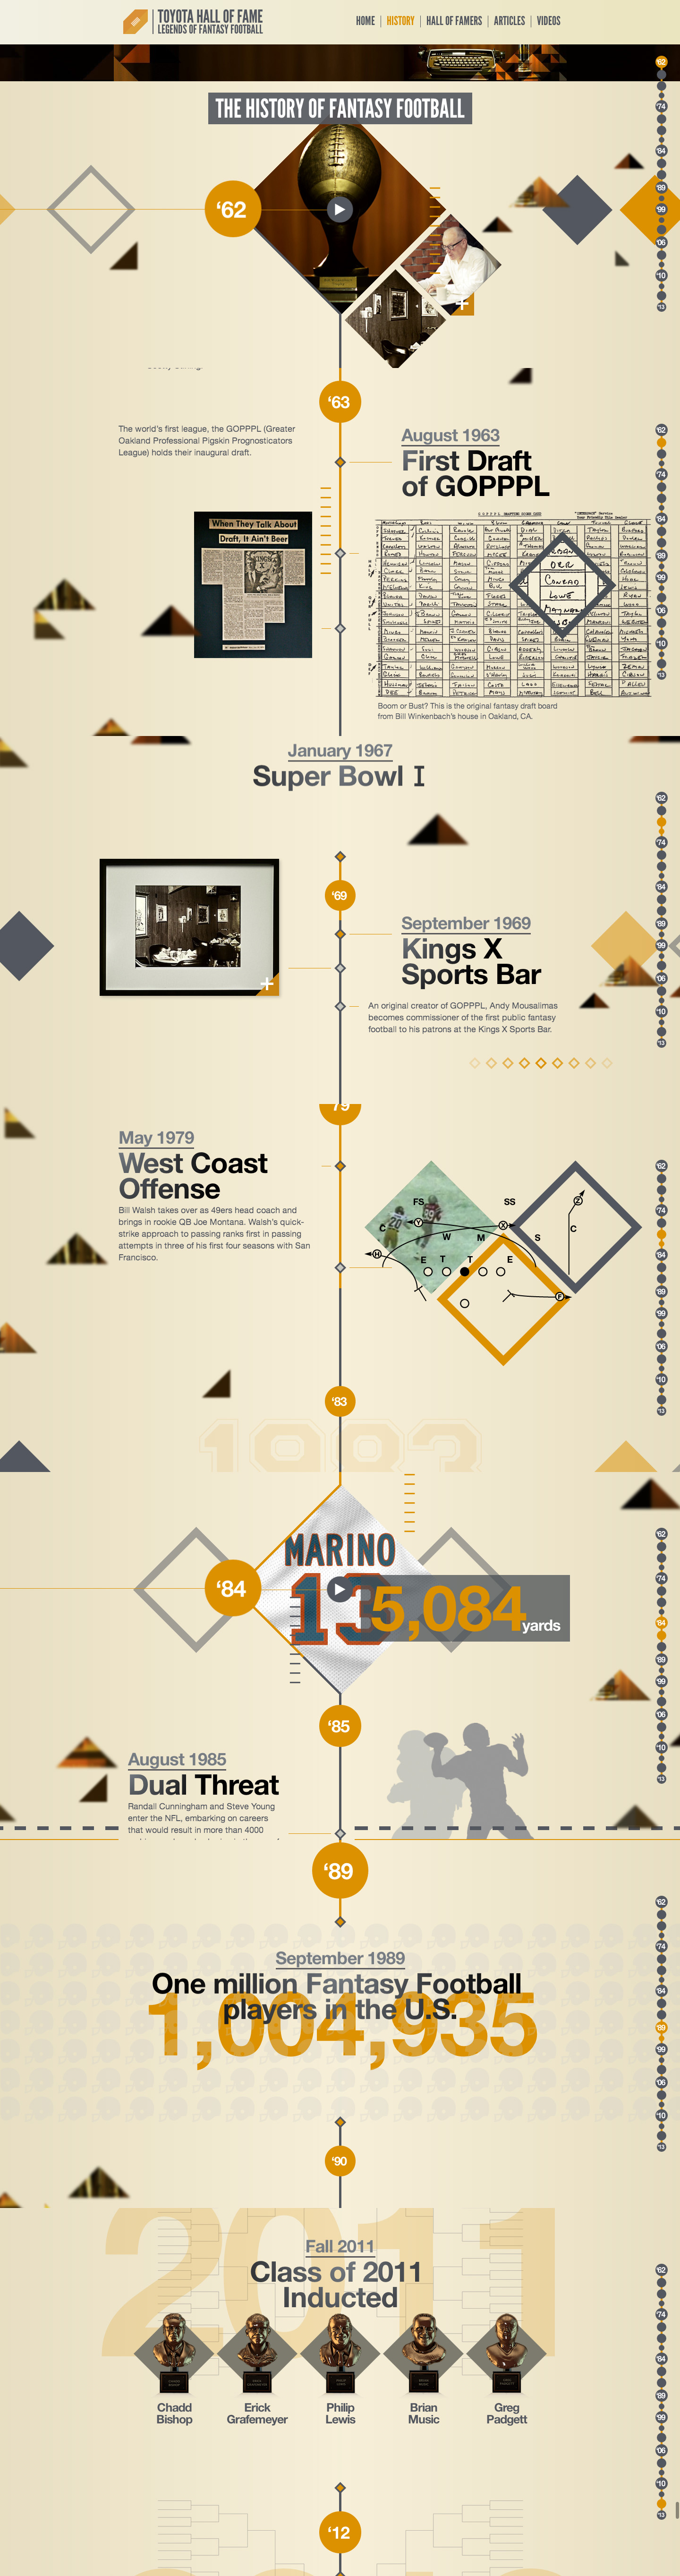 pin by rex ng on web pinterest web design timeline and design